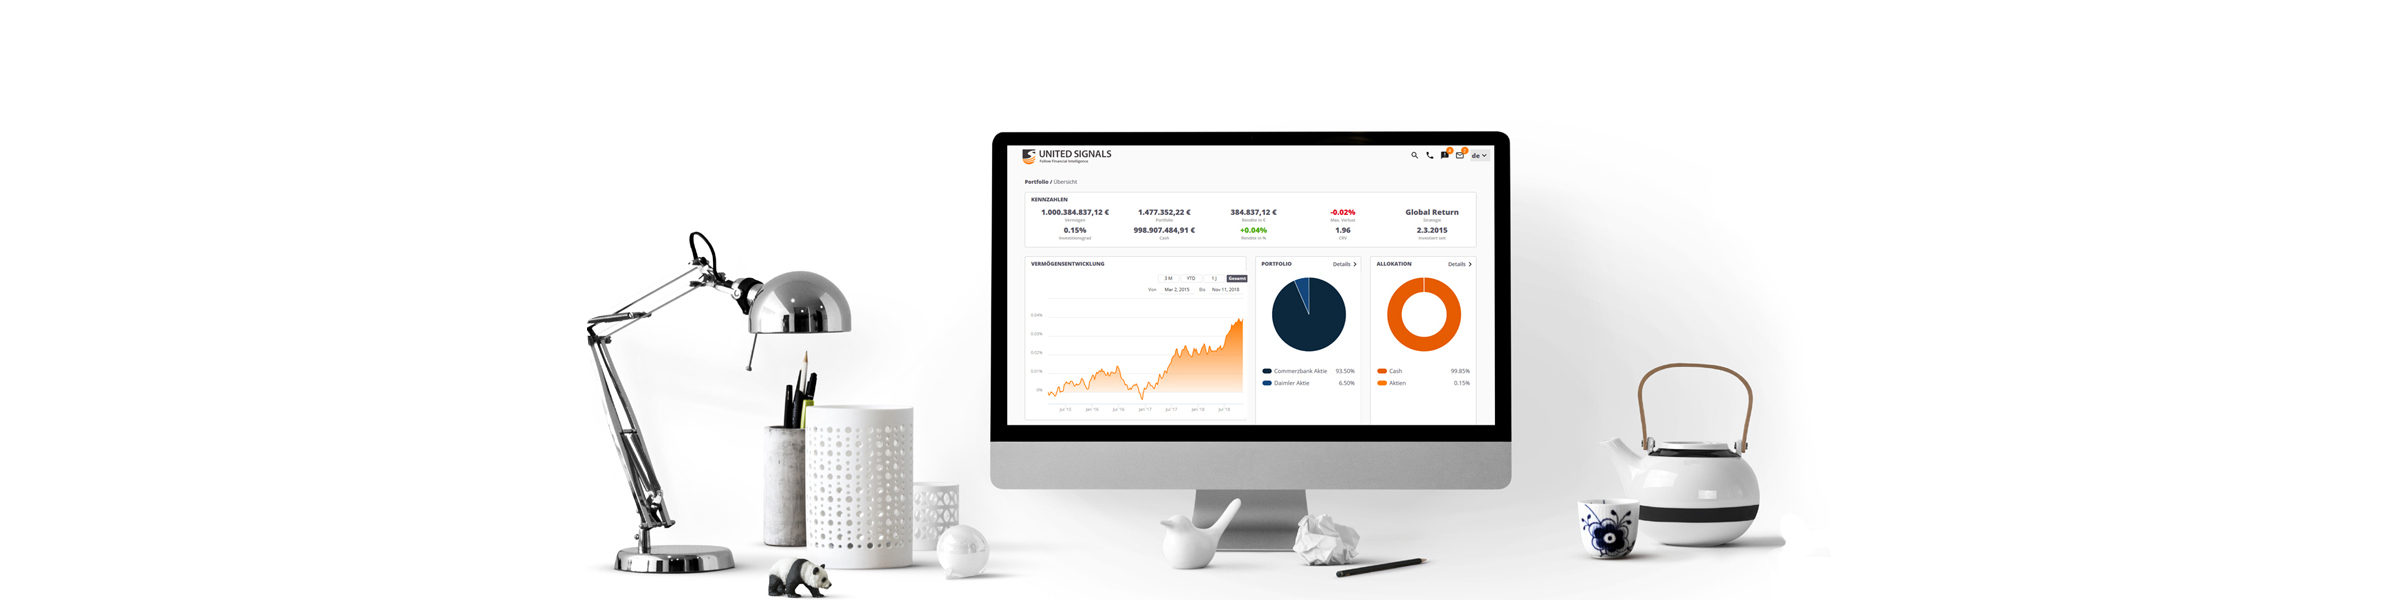 UNITED SIGNALS - Turning paper-based businesses into Streamlined Digital Dealmakers